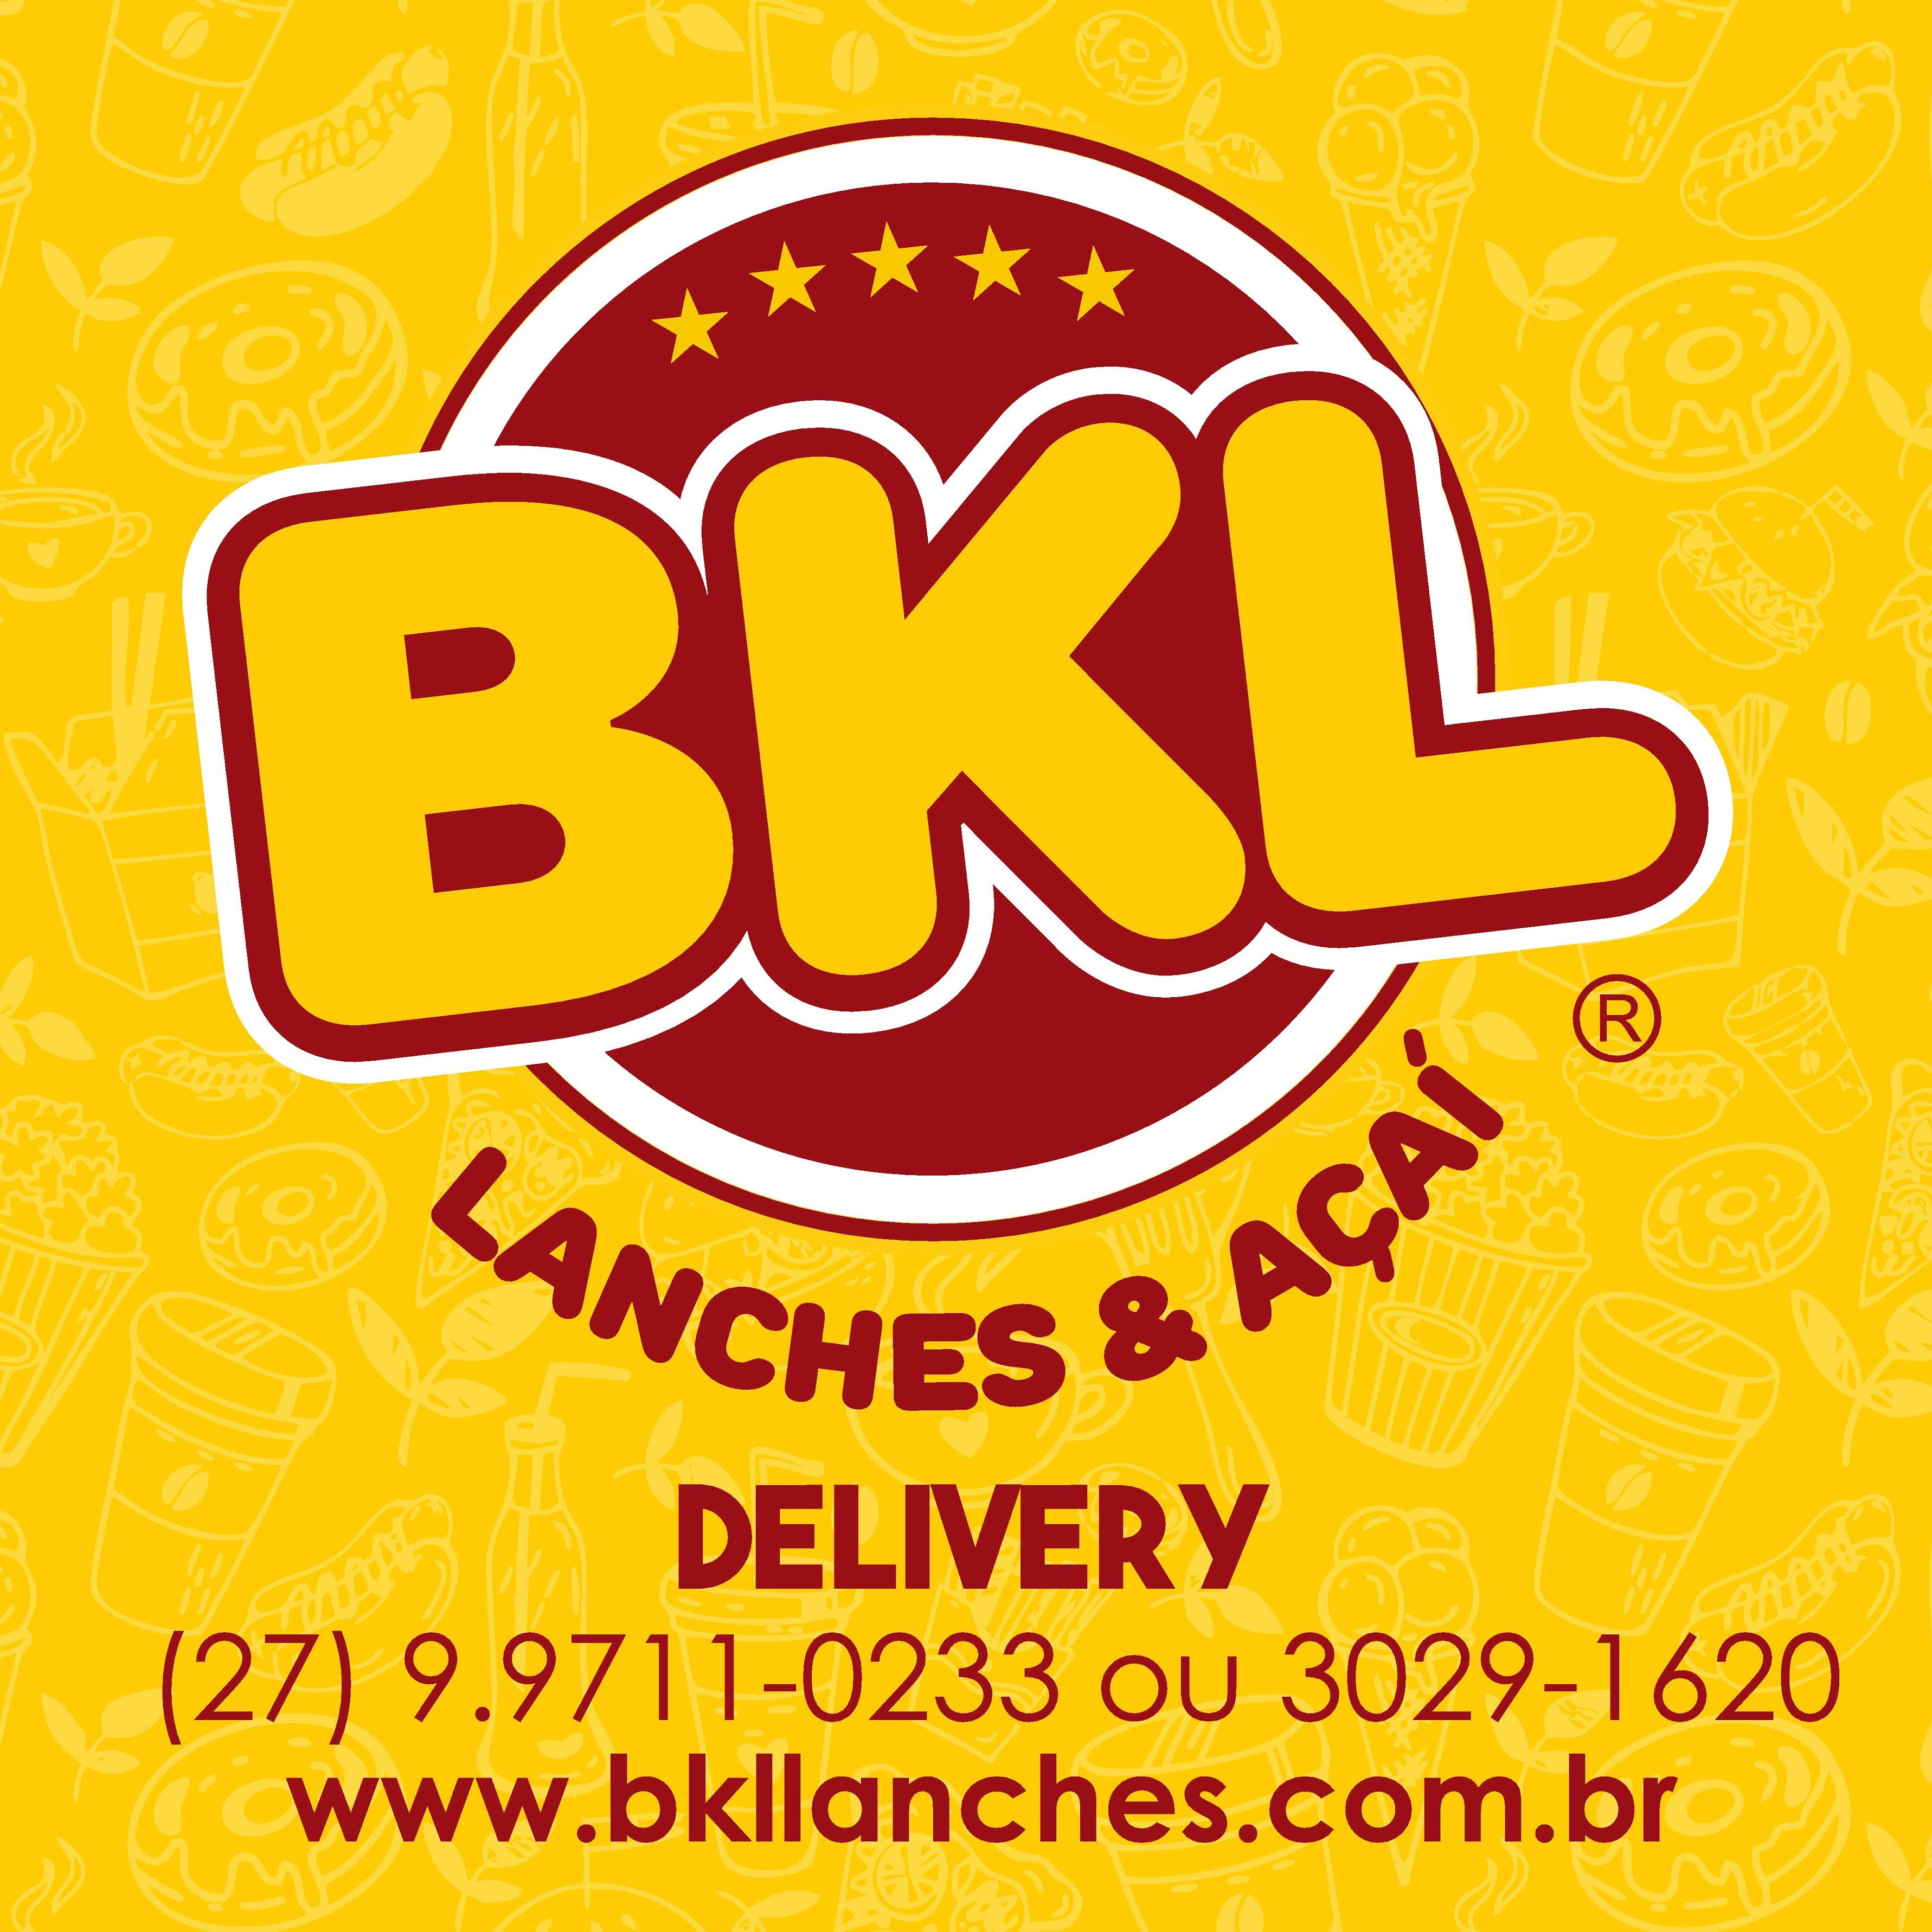 BKL LANCHES